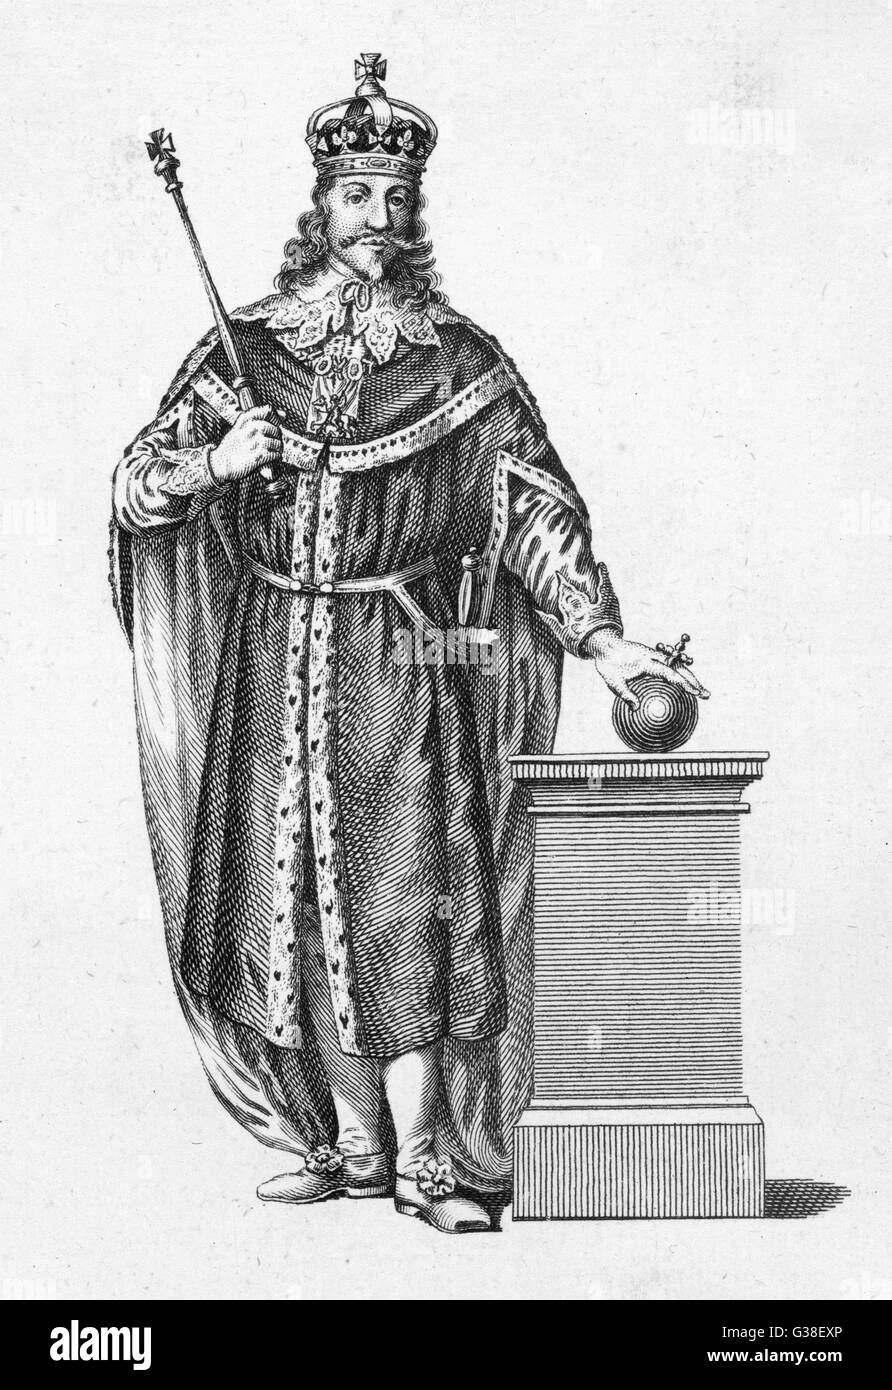 CHARLES I OF ENGLAND  in full regalia        Date: 1600 - 1649 - Stock Image